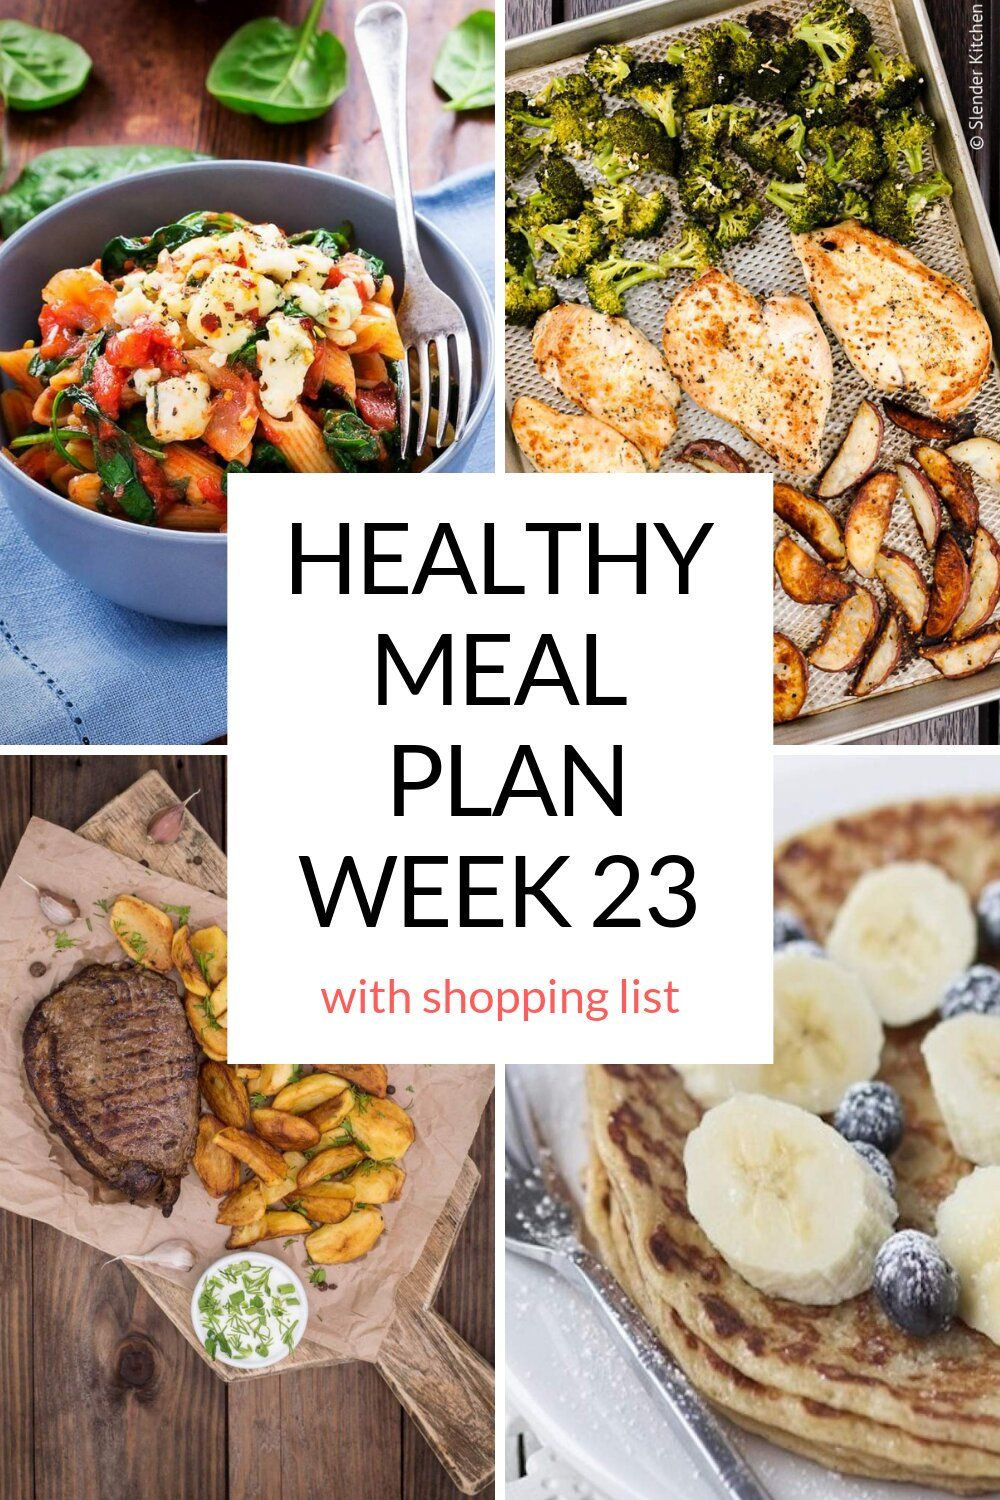 Healthy Meal Plans: Week 23 images